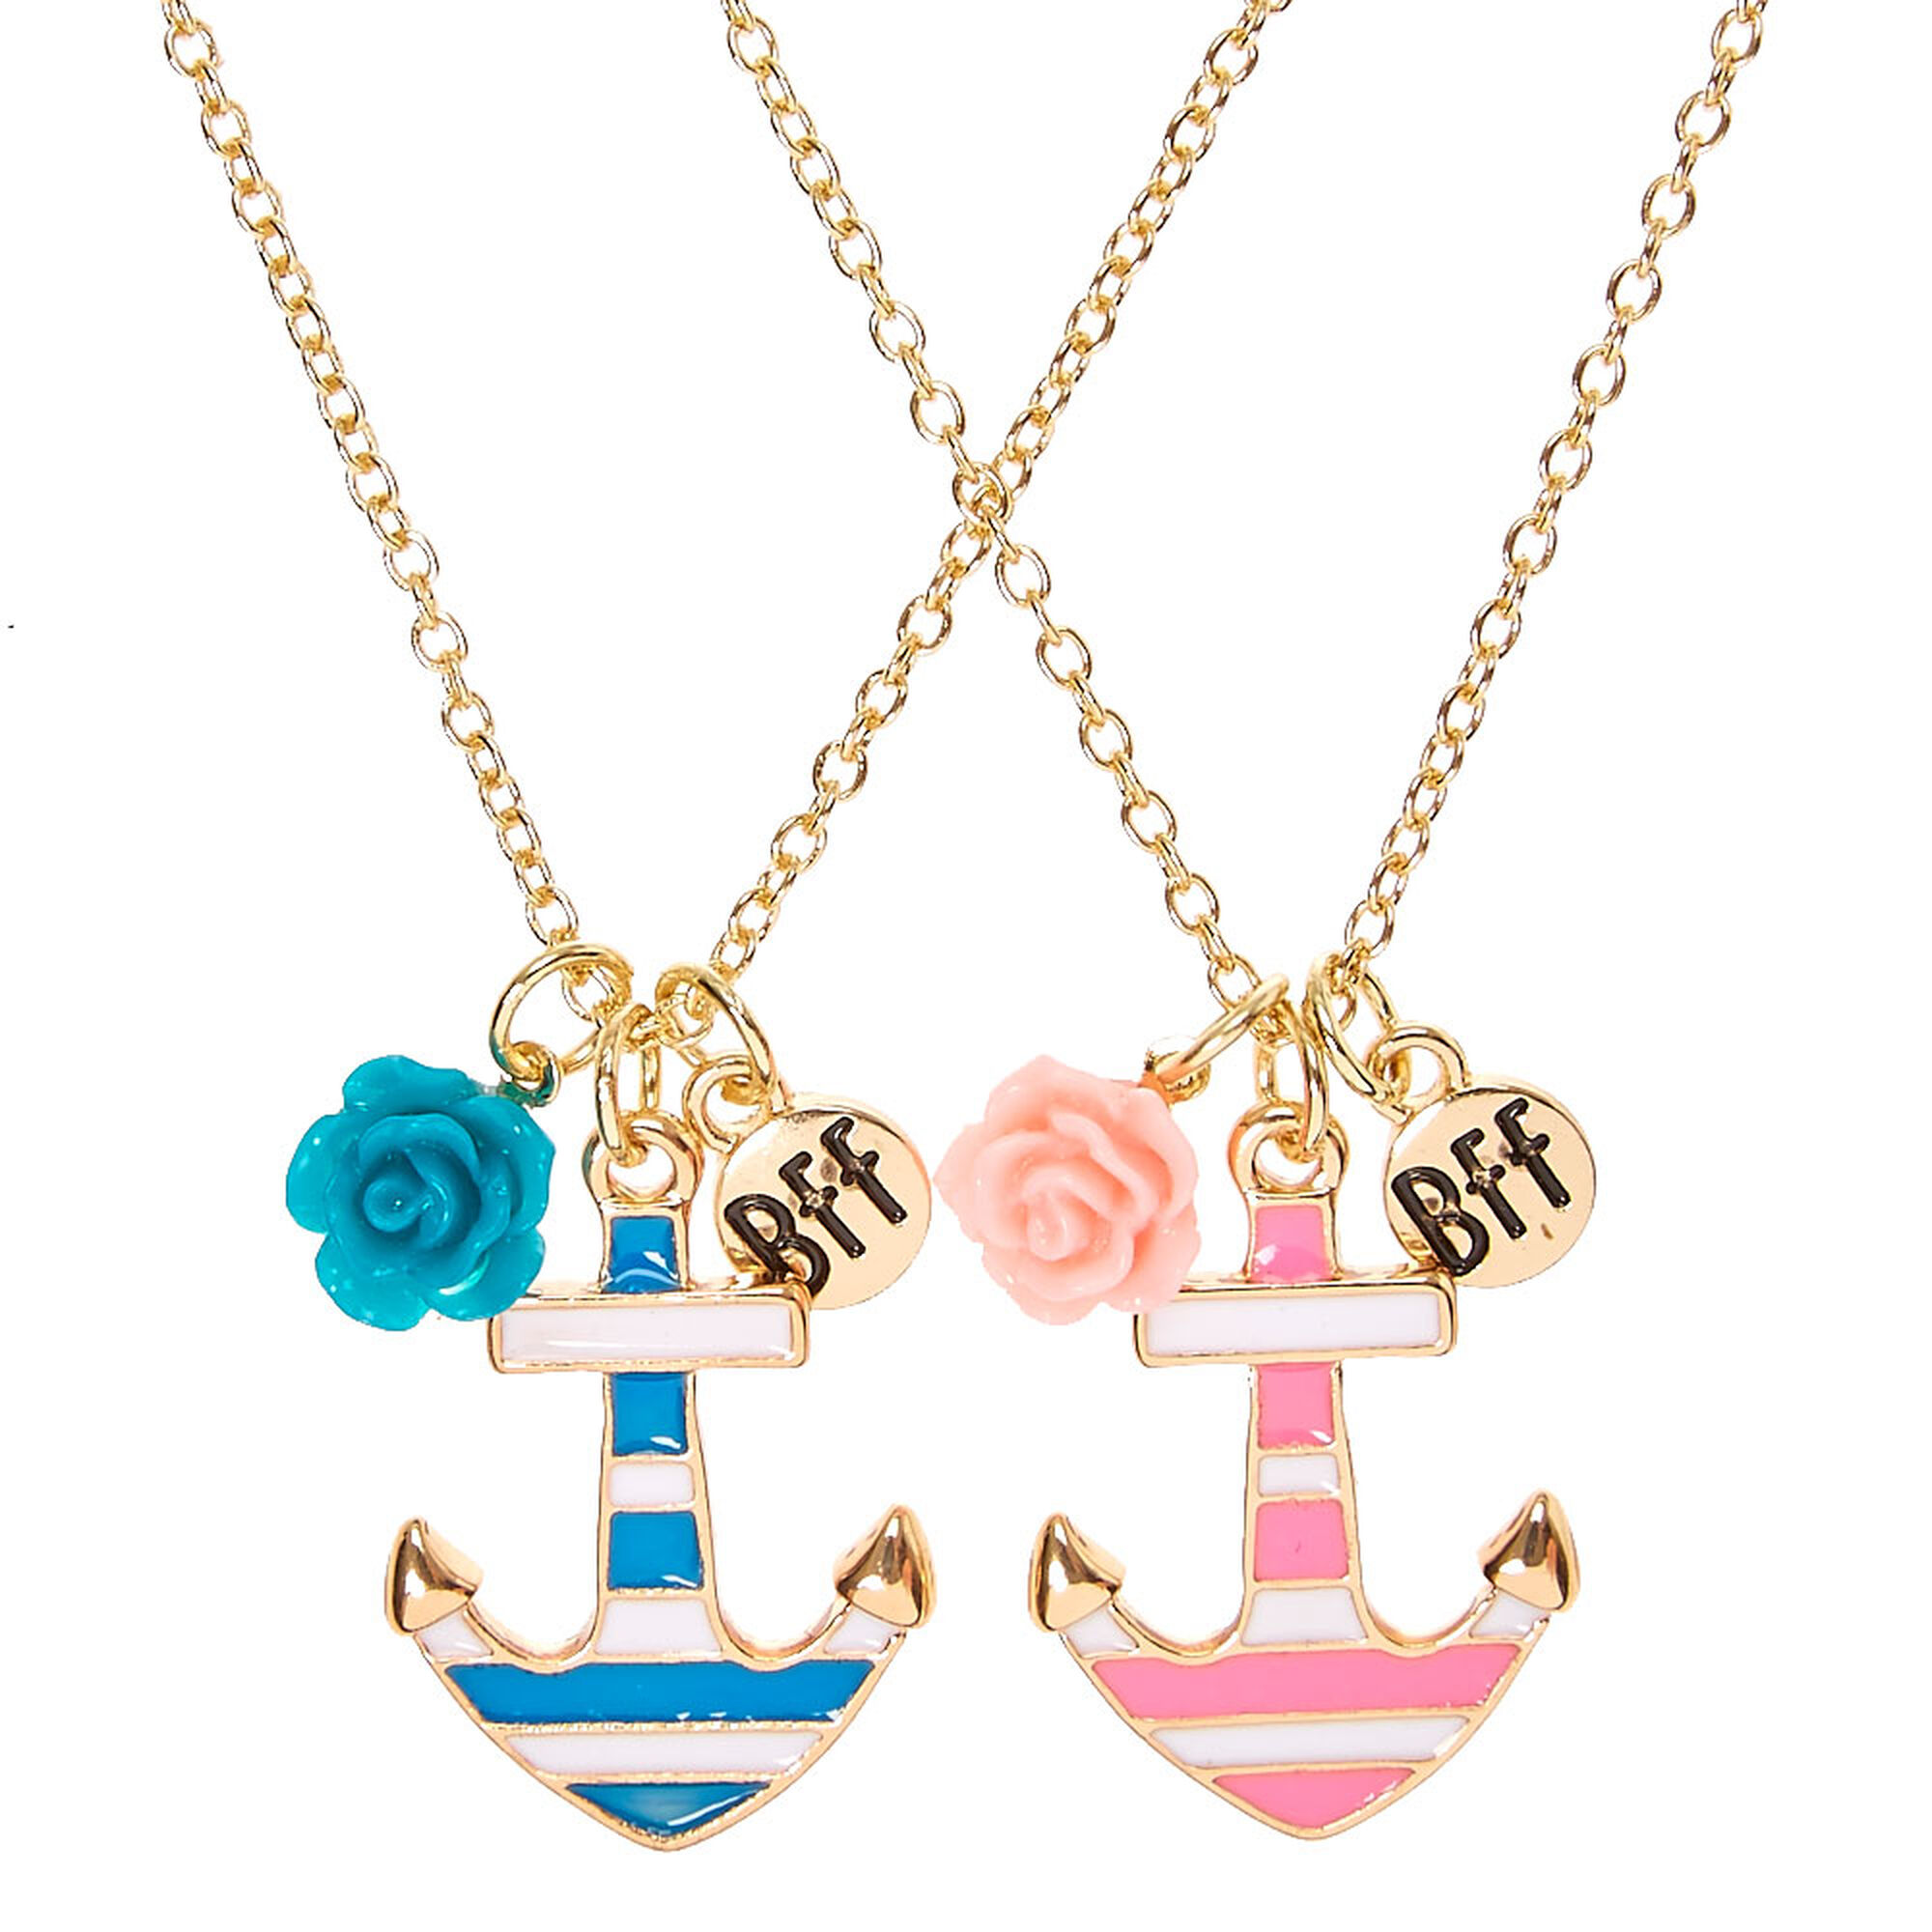 anchor best pendant friends claire tone chain necklace necklaces striped gold s